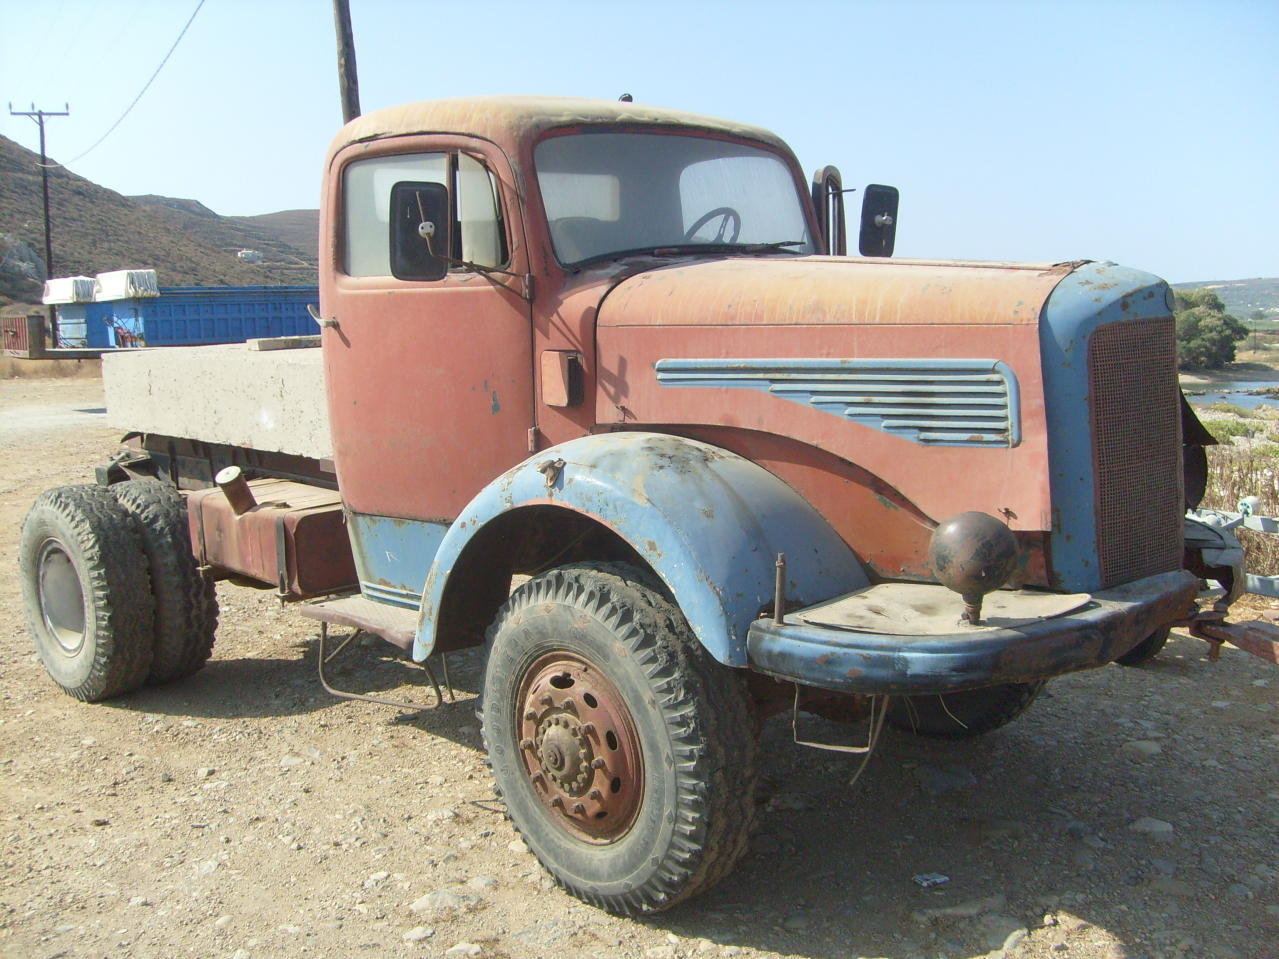 Antique Big Trucks Sale http://dreamwallpepers.blogspot.com/2012/07/old-trucks-for-sale.html